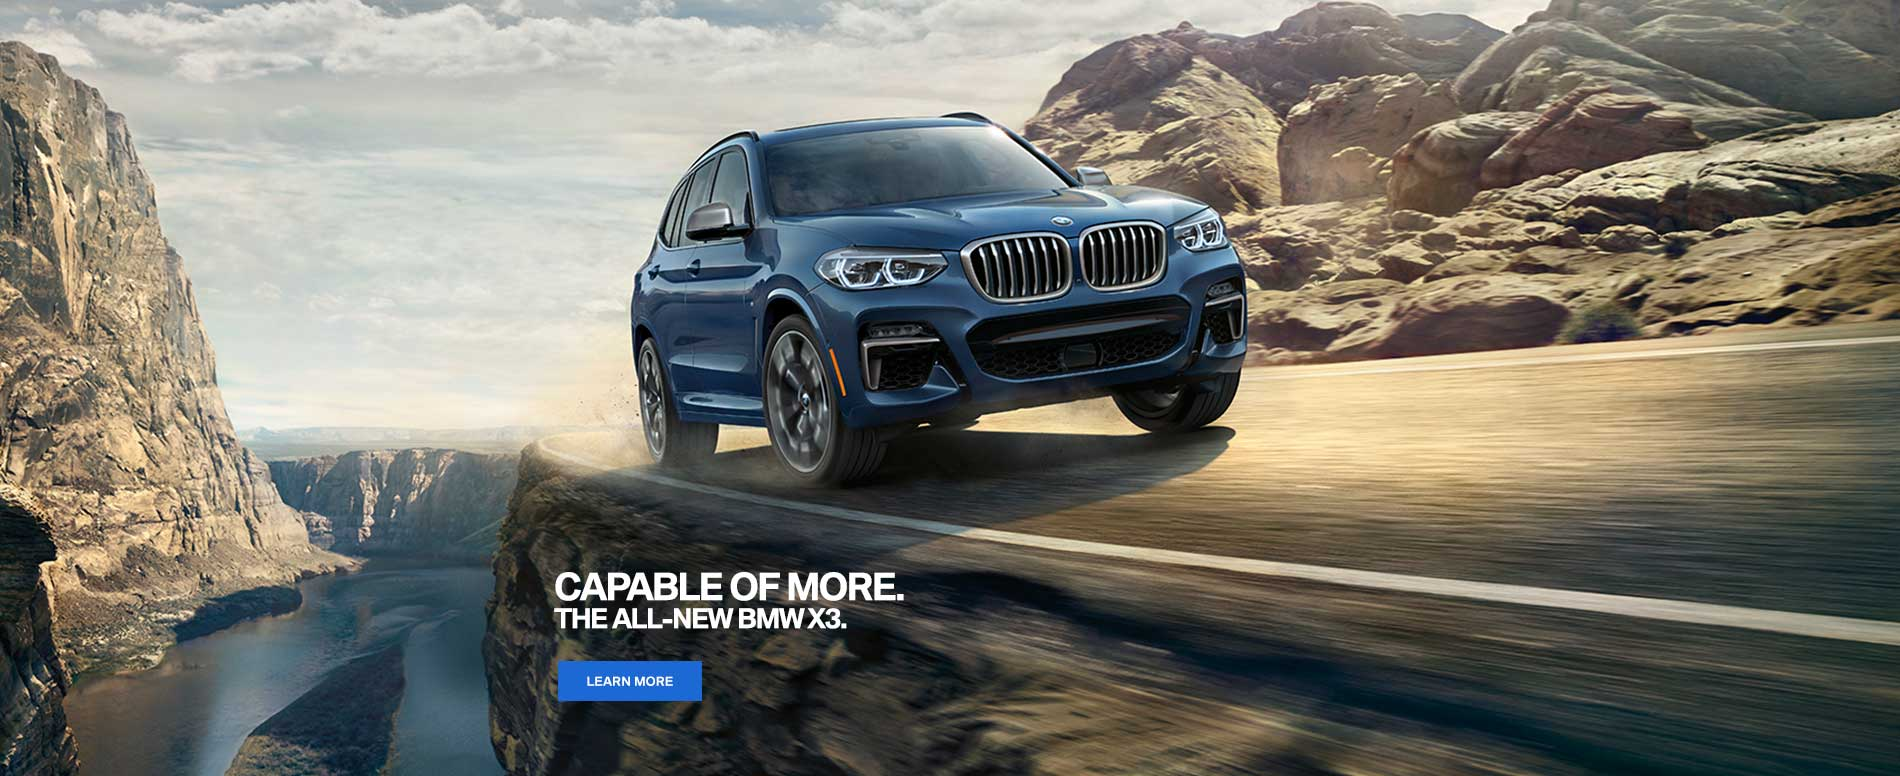 BMW Eastern Region Lease Offers